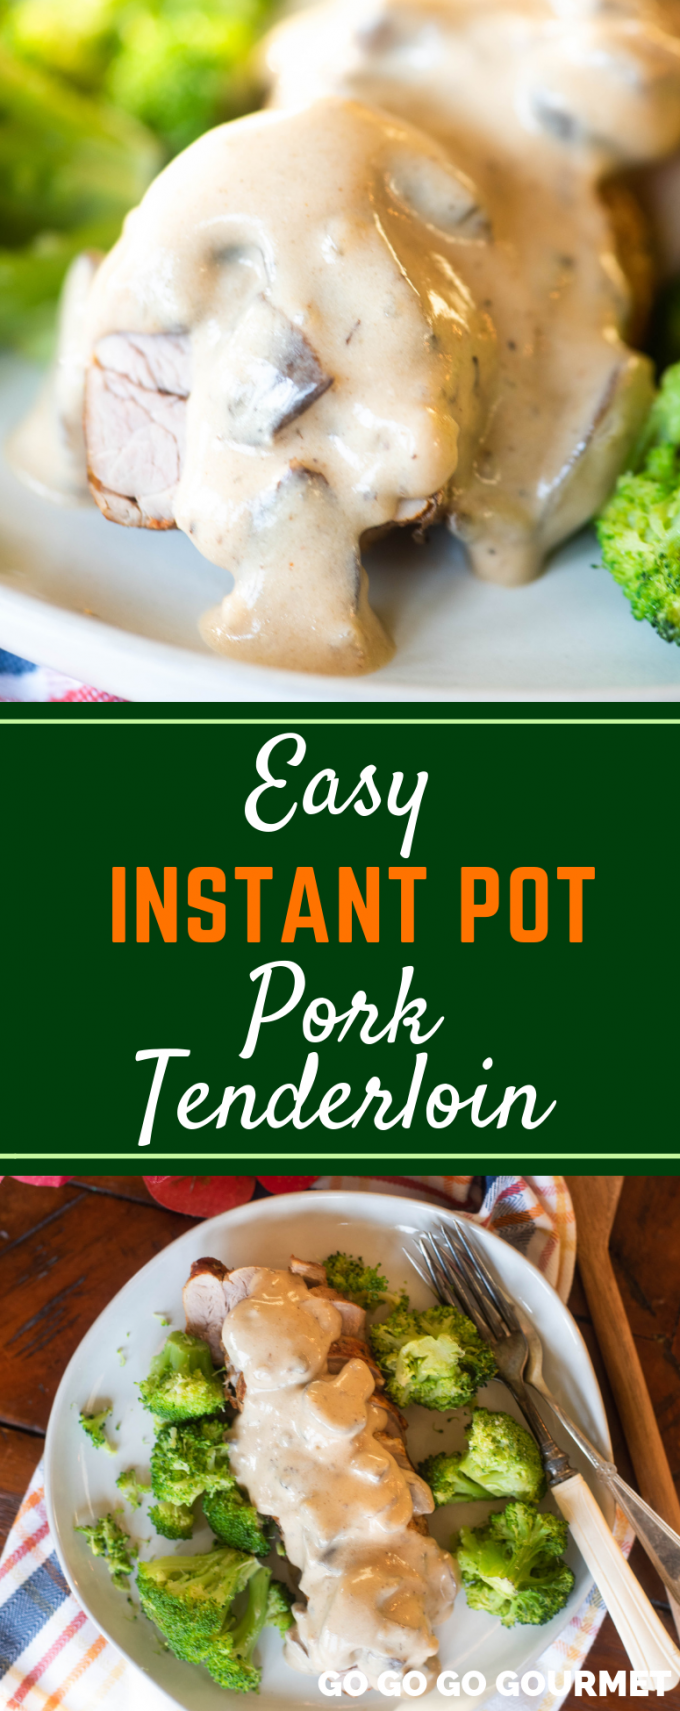 If you're looking to add to your pressure cooker recipes, you need to try this easy Instant Pot Pork Tenderloin! With a cook time of only minutes, this pork tenderloin with gravy makes for a perfect weeknight meal! Serve with broccoli and potatoes for a complete meal. #GoGoGoGourmet #InstantPotPorkTenderloin #EasyInstantPotMeals #EasyInstantPotRecipes